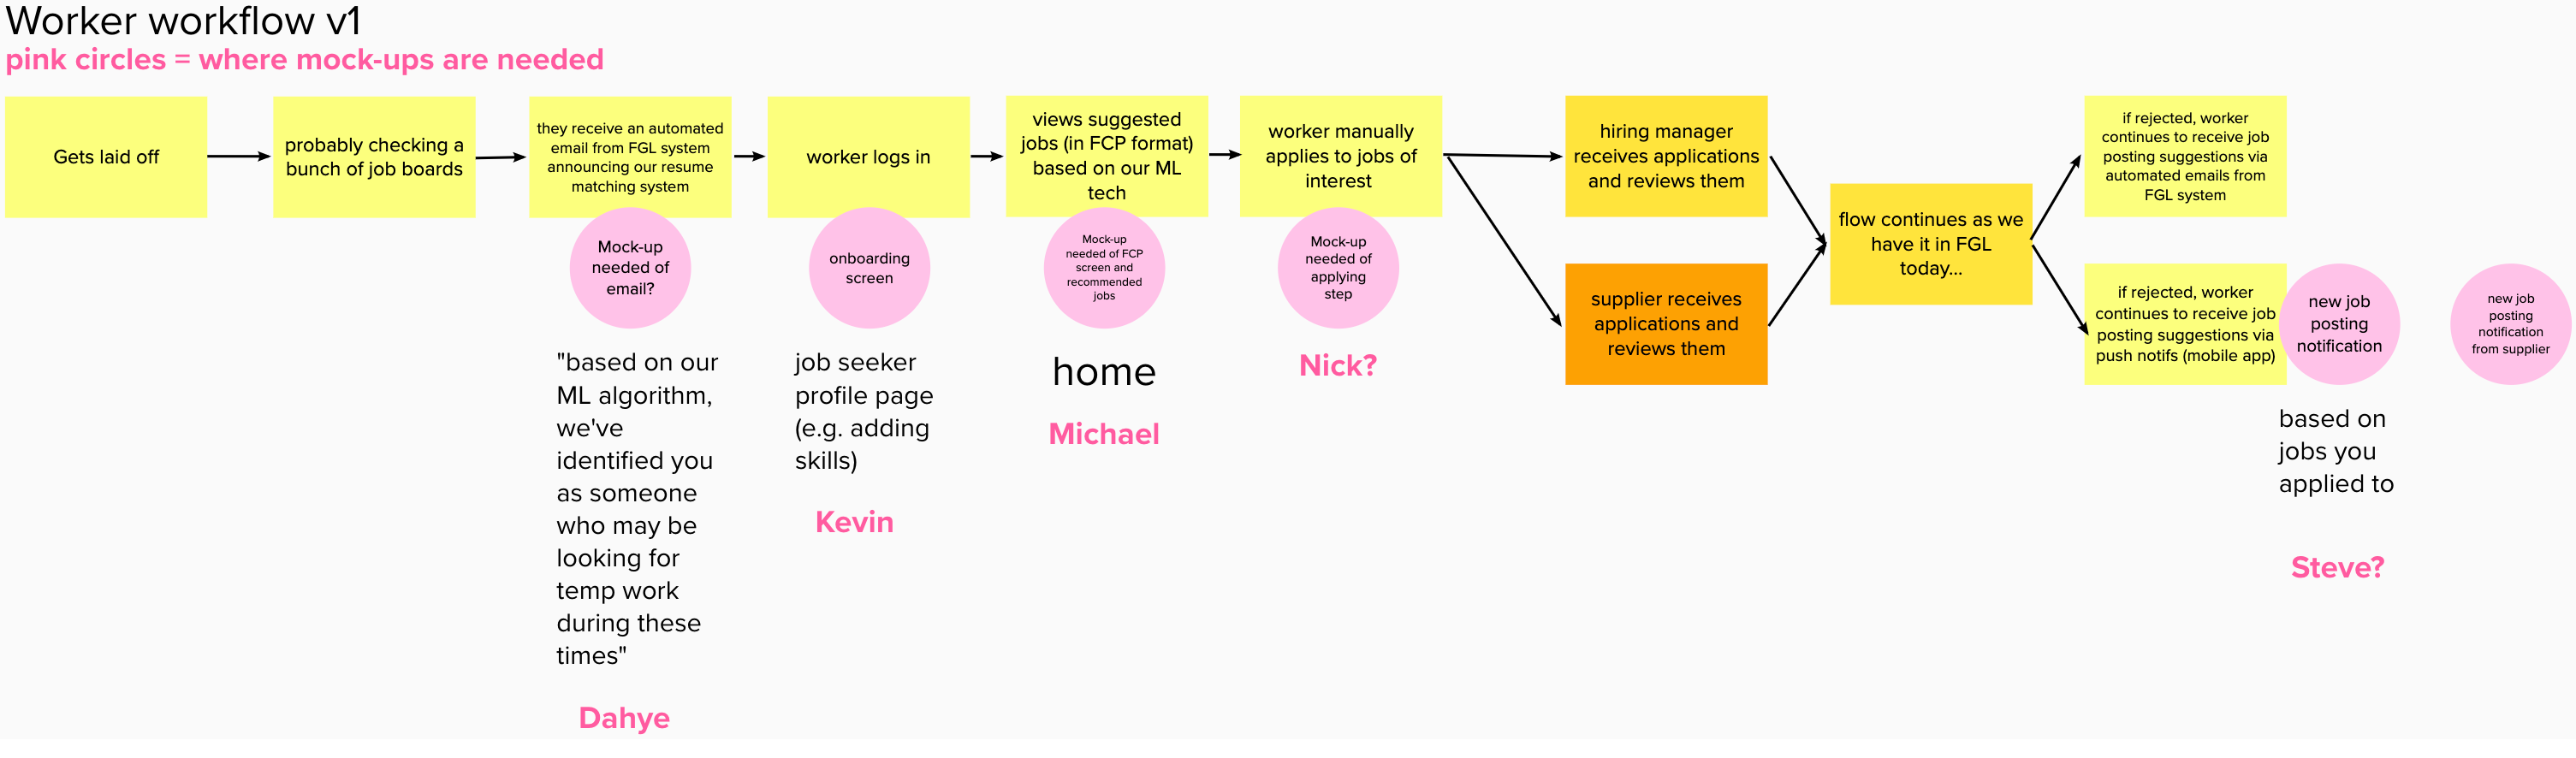 Our user workflow that I led the creation of